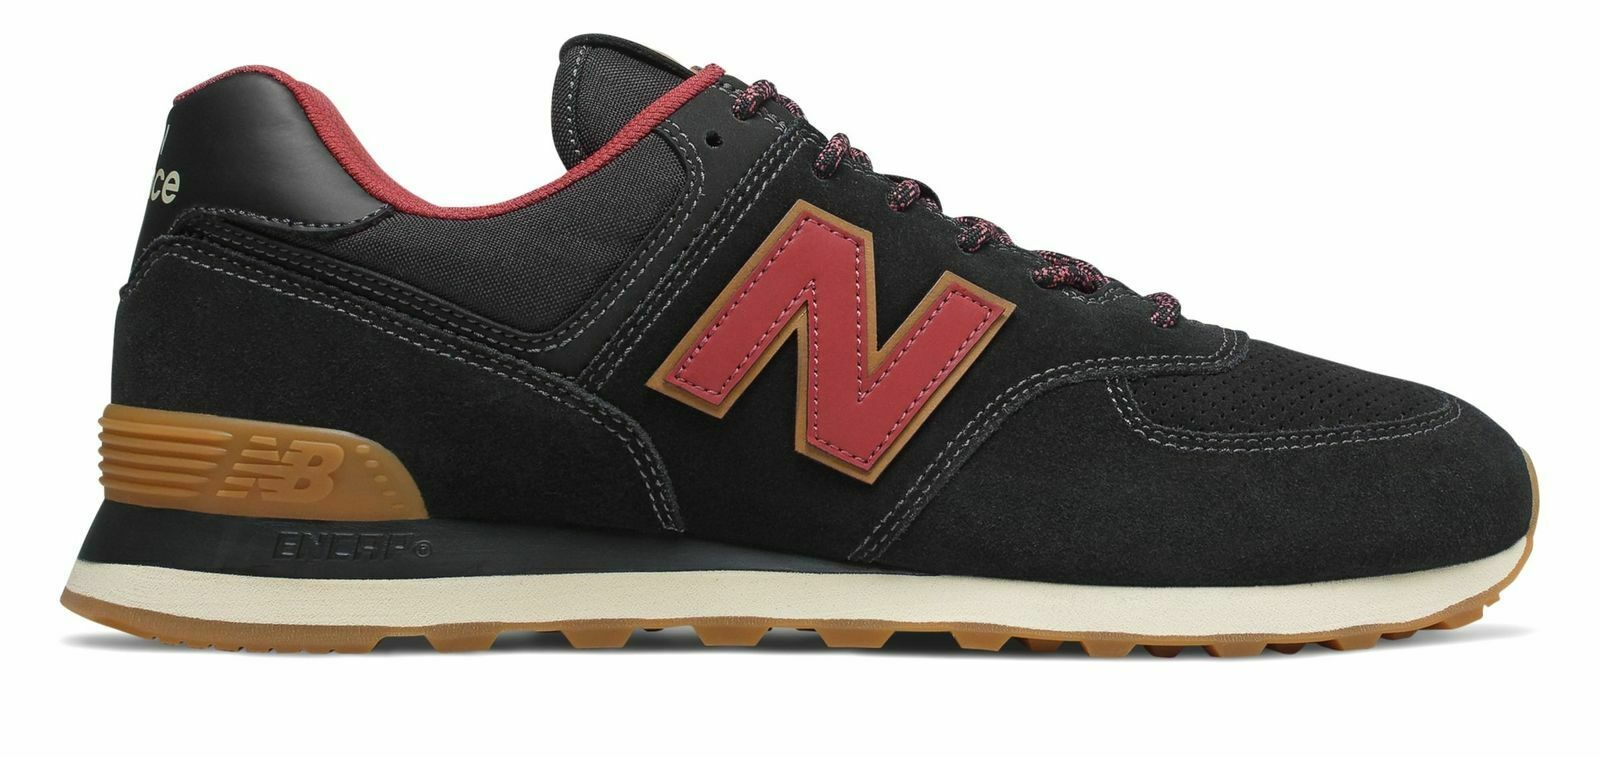 New Balance Men's 574 shoes Classics Traditionnels Black with Red ML574OTD